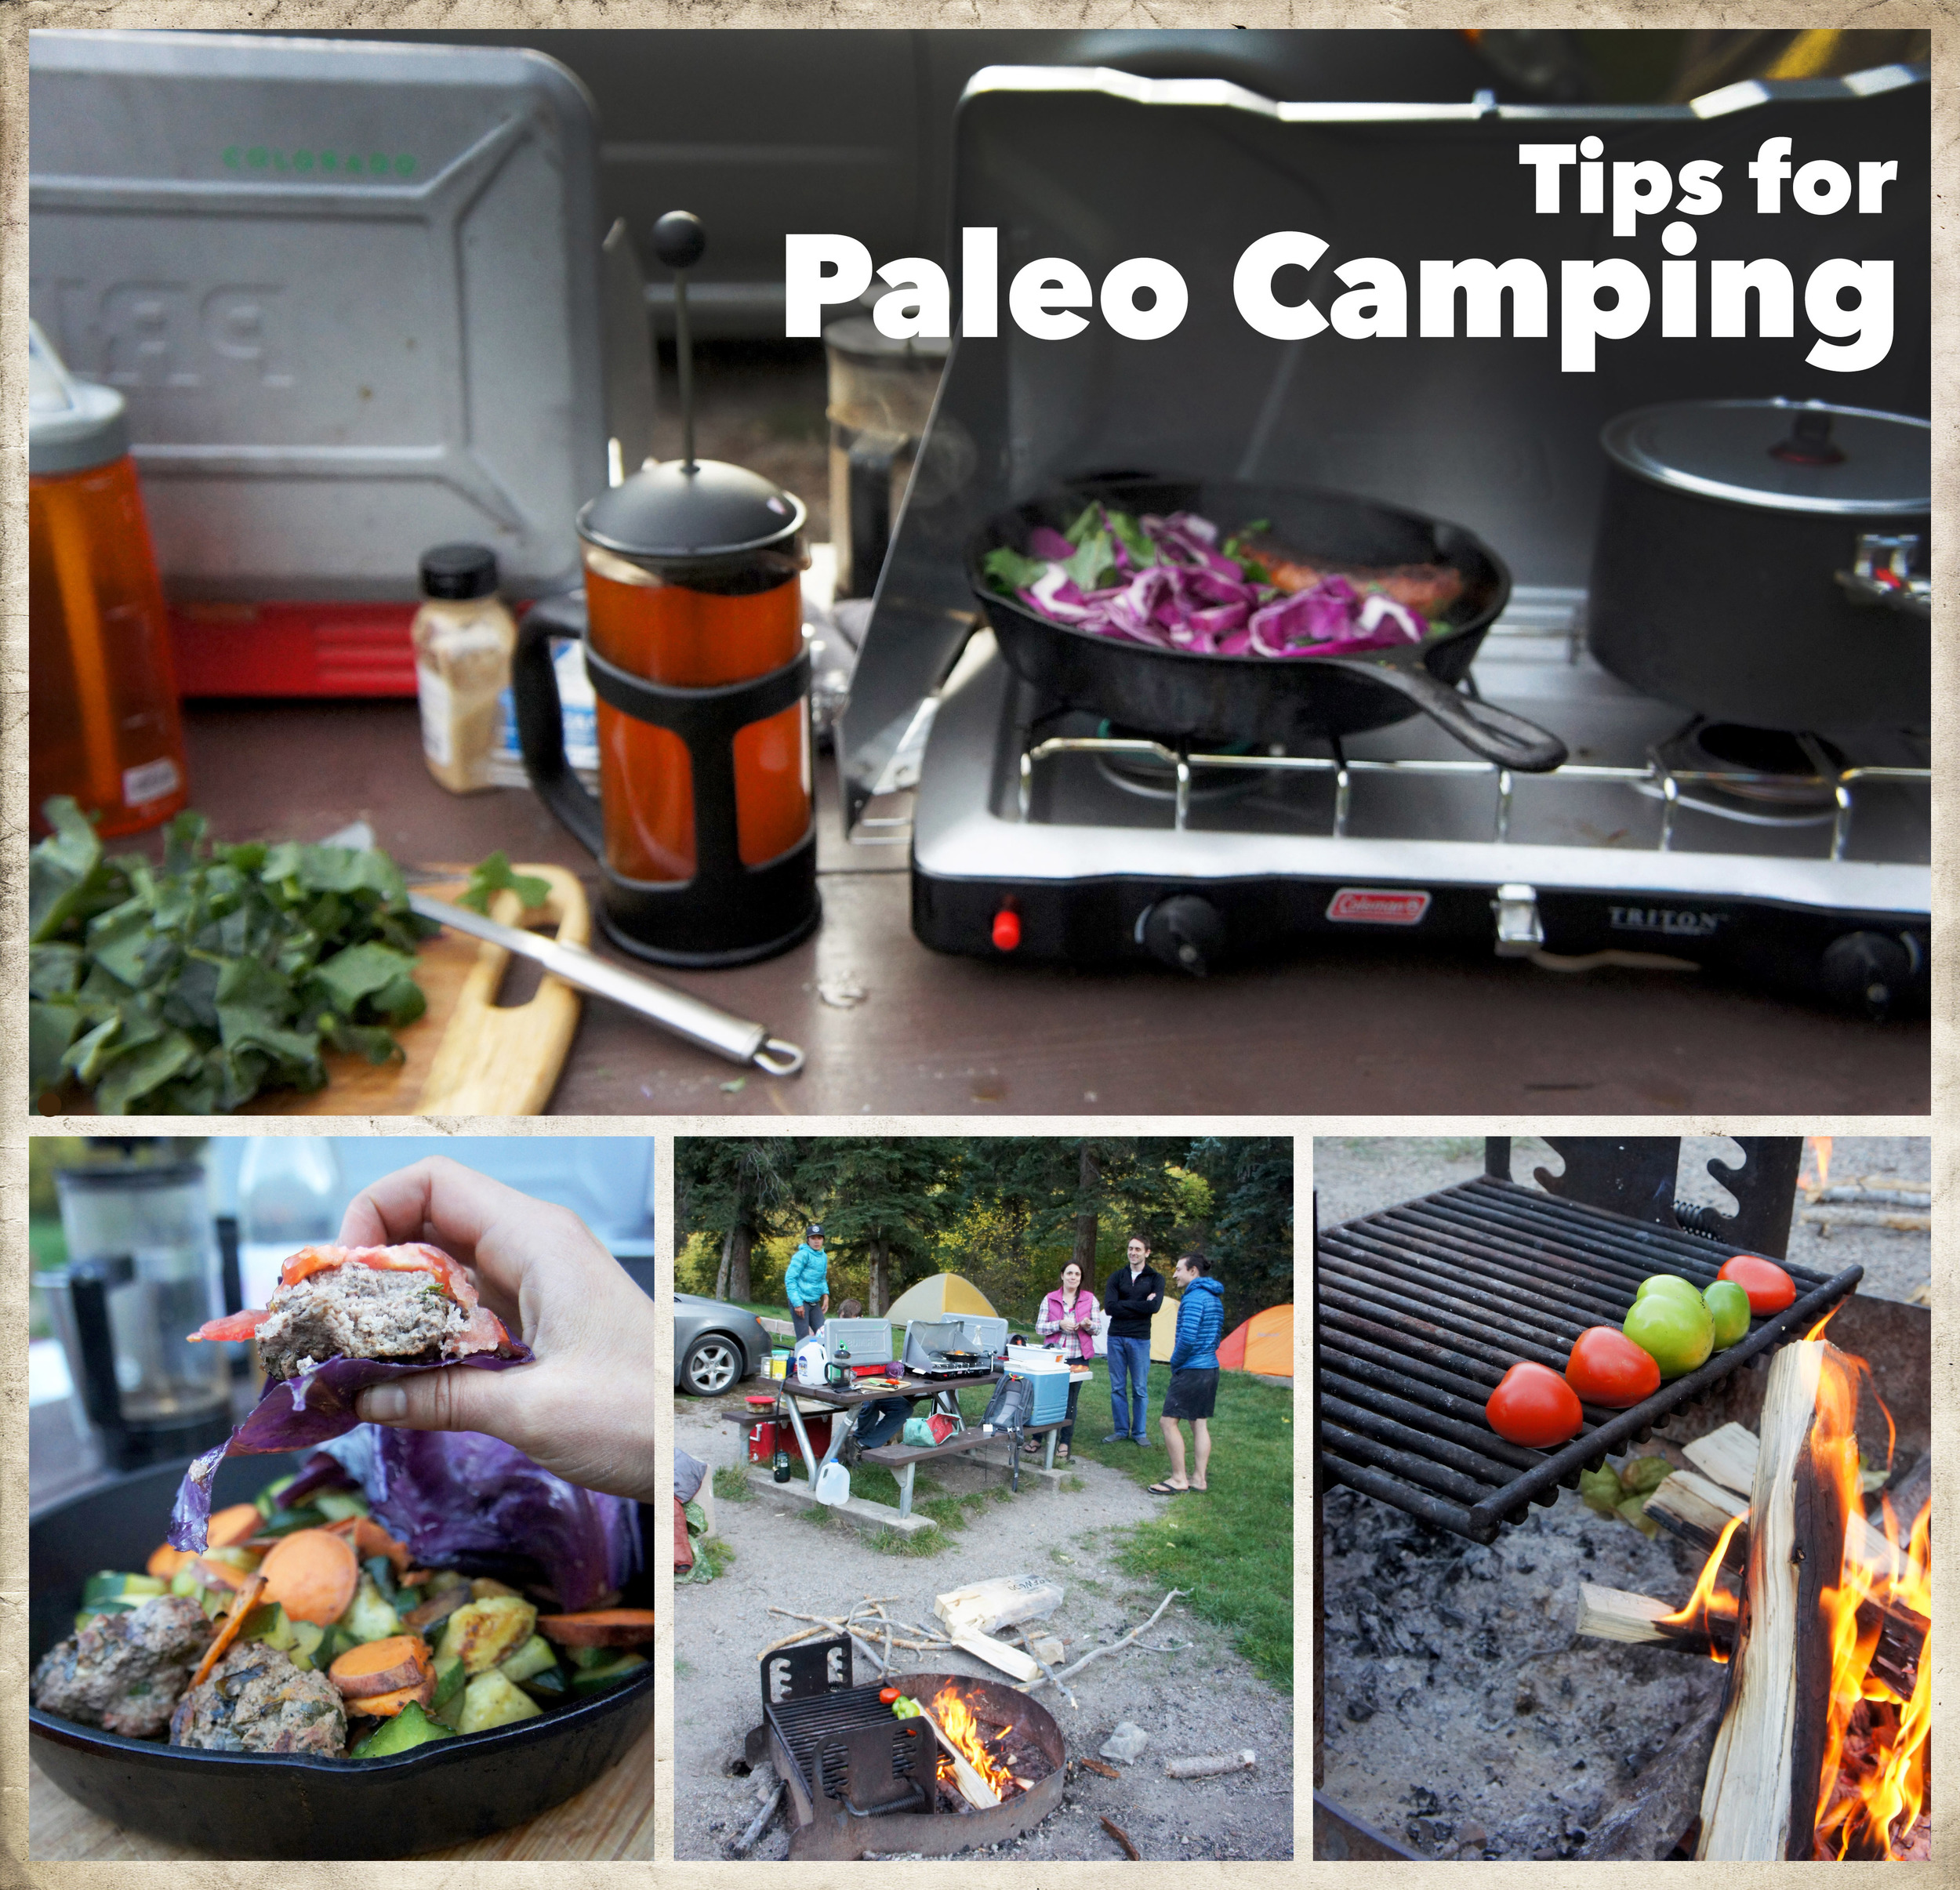 Tips for Paleo Camping (Primal, too!)